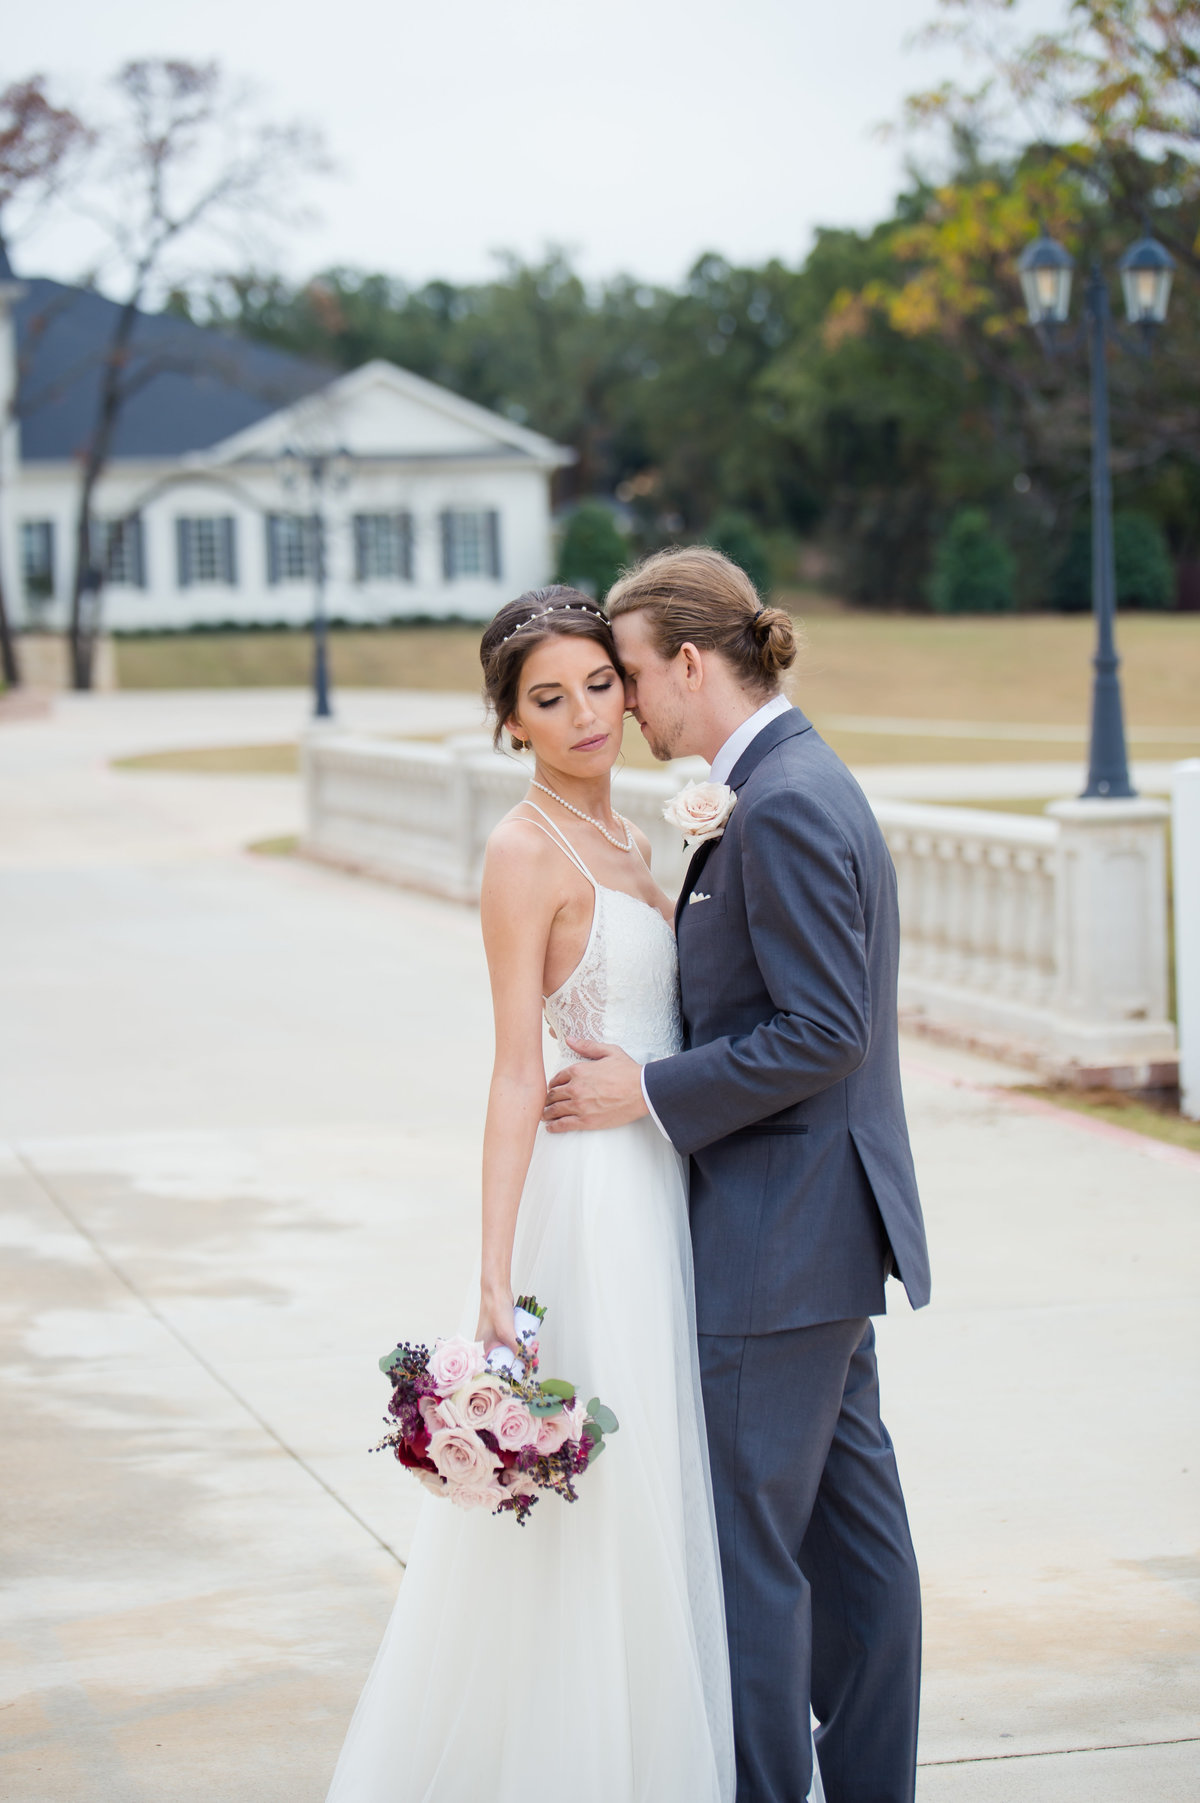 Bride and Groom at The Milestone Aubrey by Brittany Barclay Photography